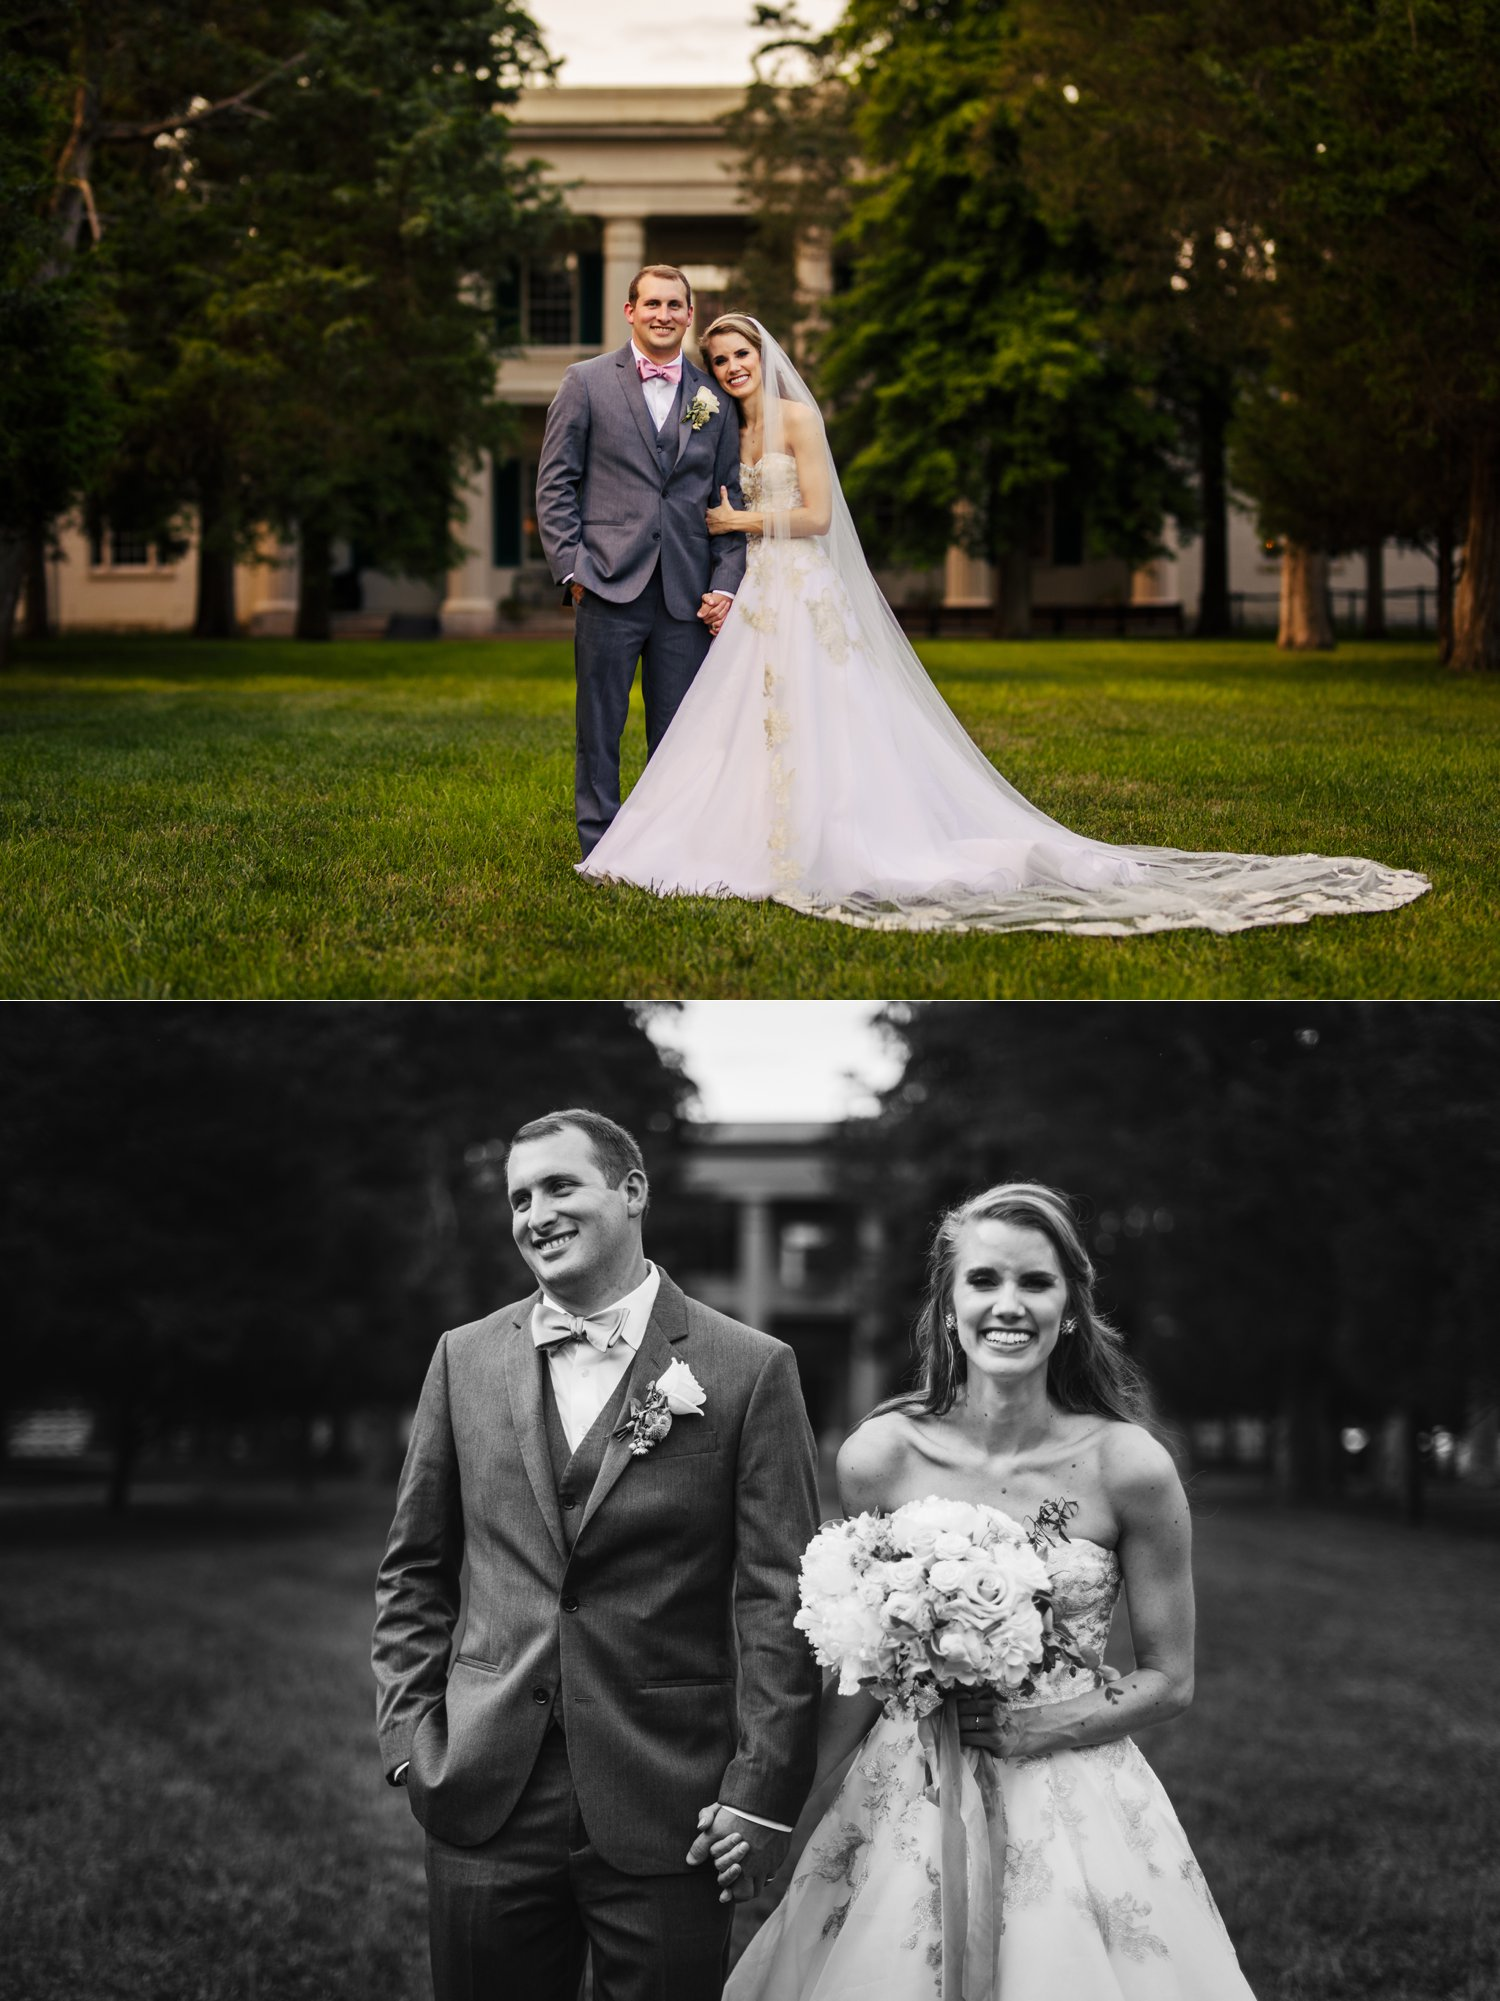 CK-Photo-Nashville-engagement-wedding-photographer-andrew-jacksons-hermitage